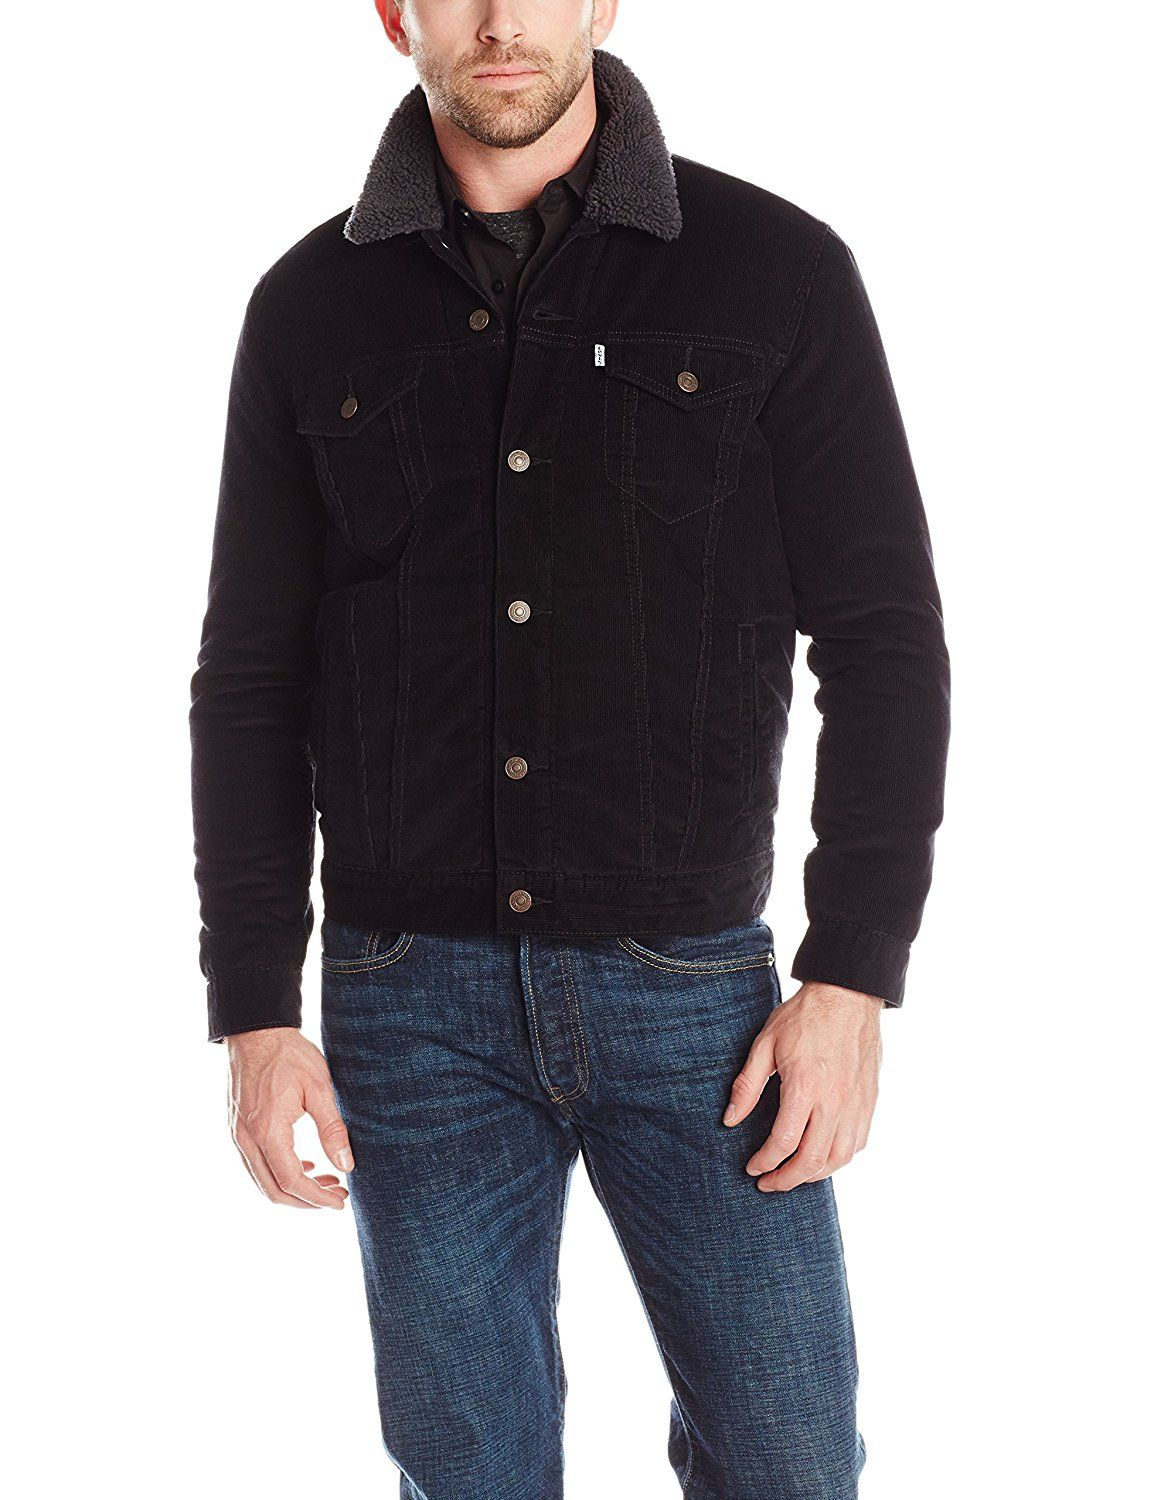 Levi's Men's Sherpa Trucker Jacket, Black Sherpa/Corduroy